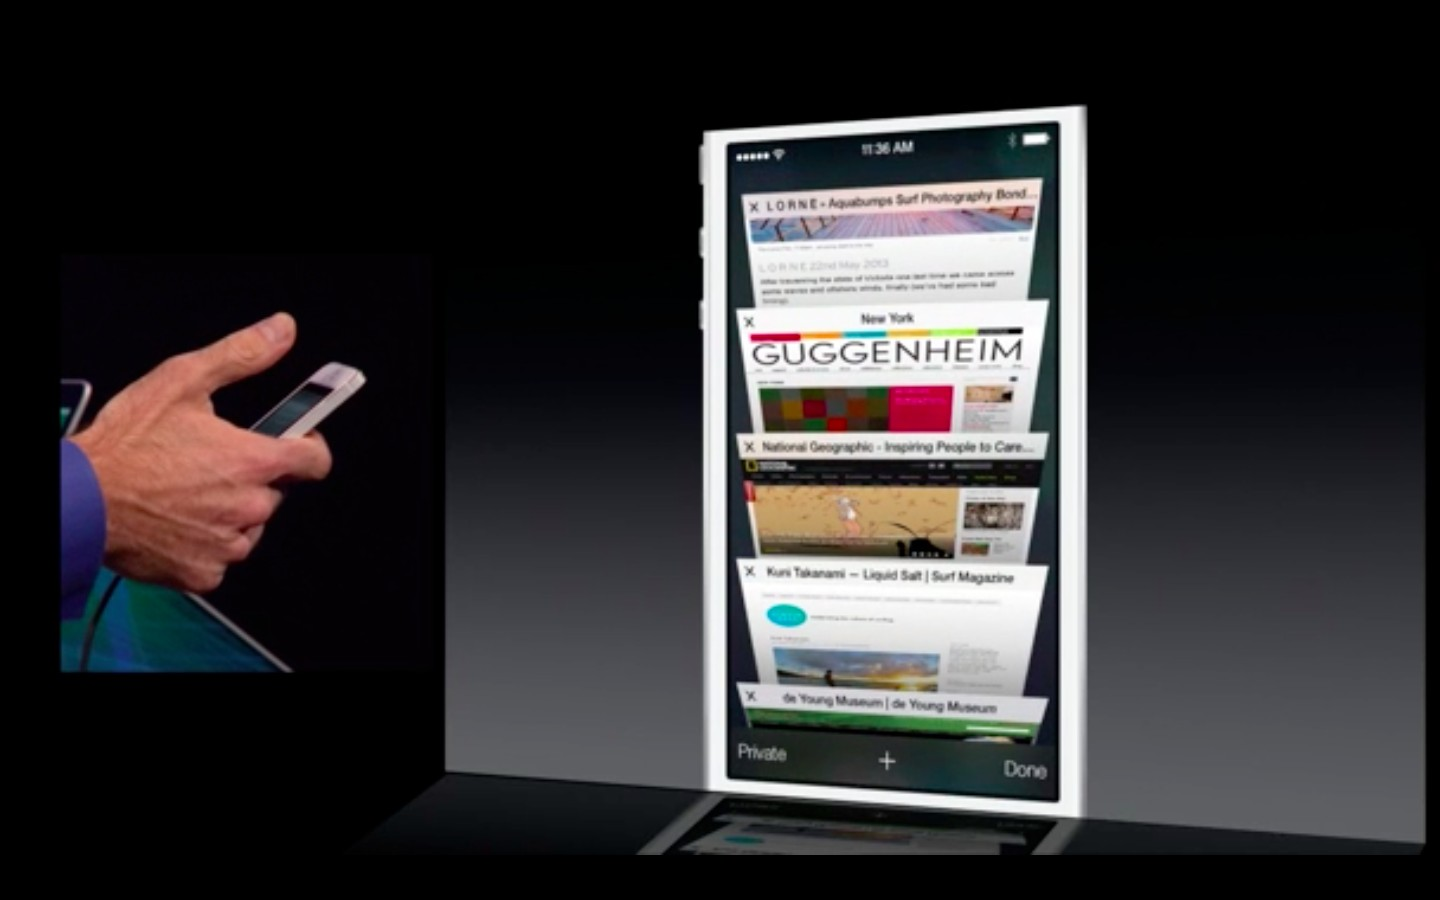 Apple: iOS 7 mit Multitasking und neuem Interface - Safari unter iOS 7 (Bild: Apple/Screenshot: Golem.de)